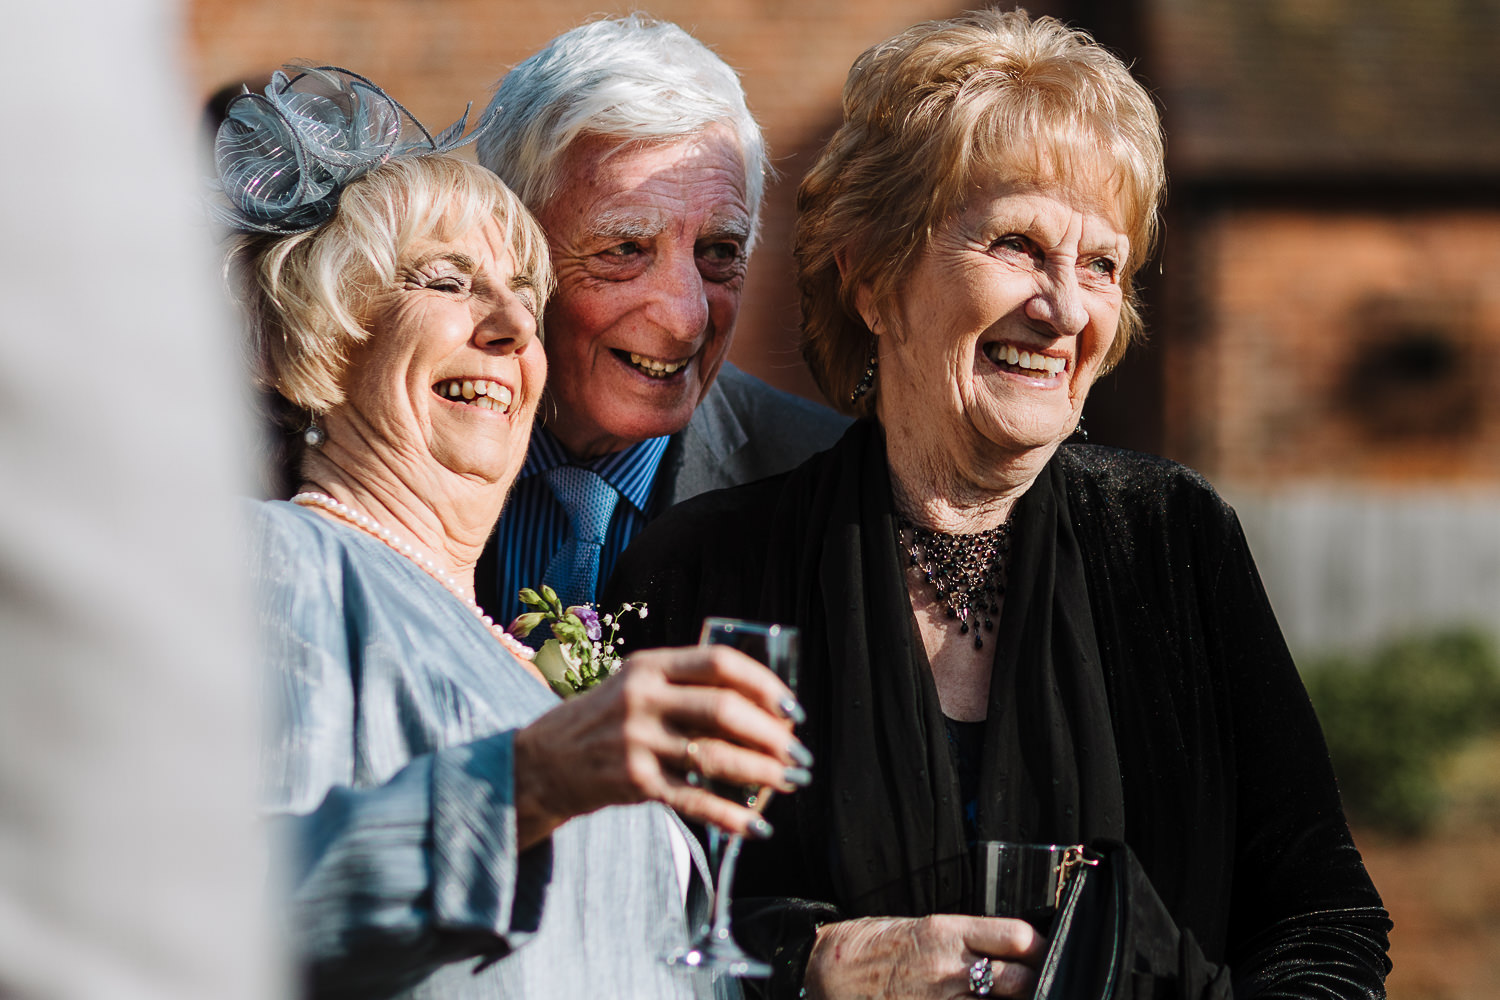 Grandparents laughing together